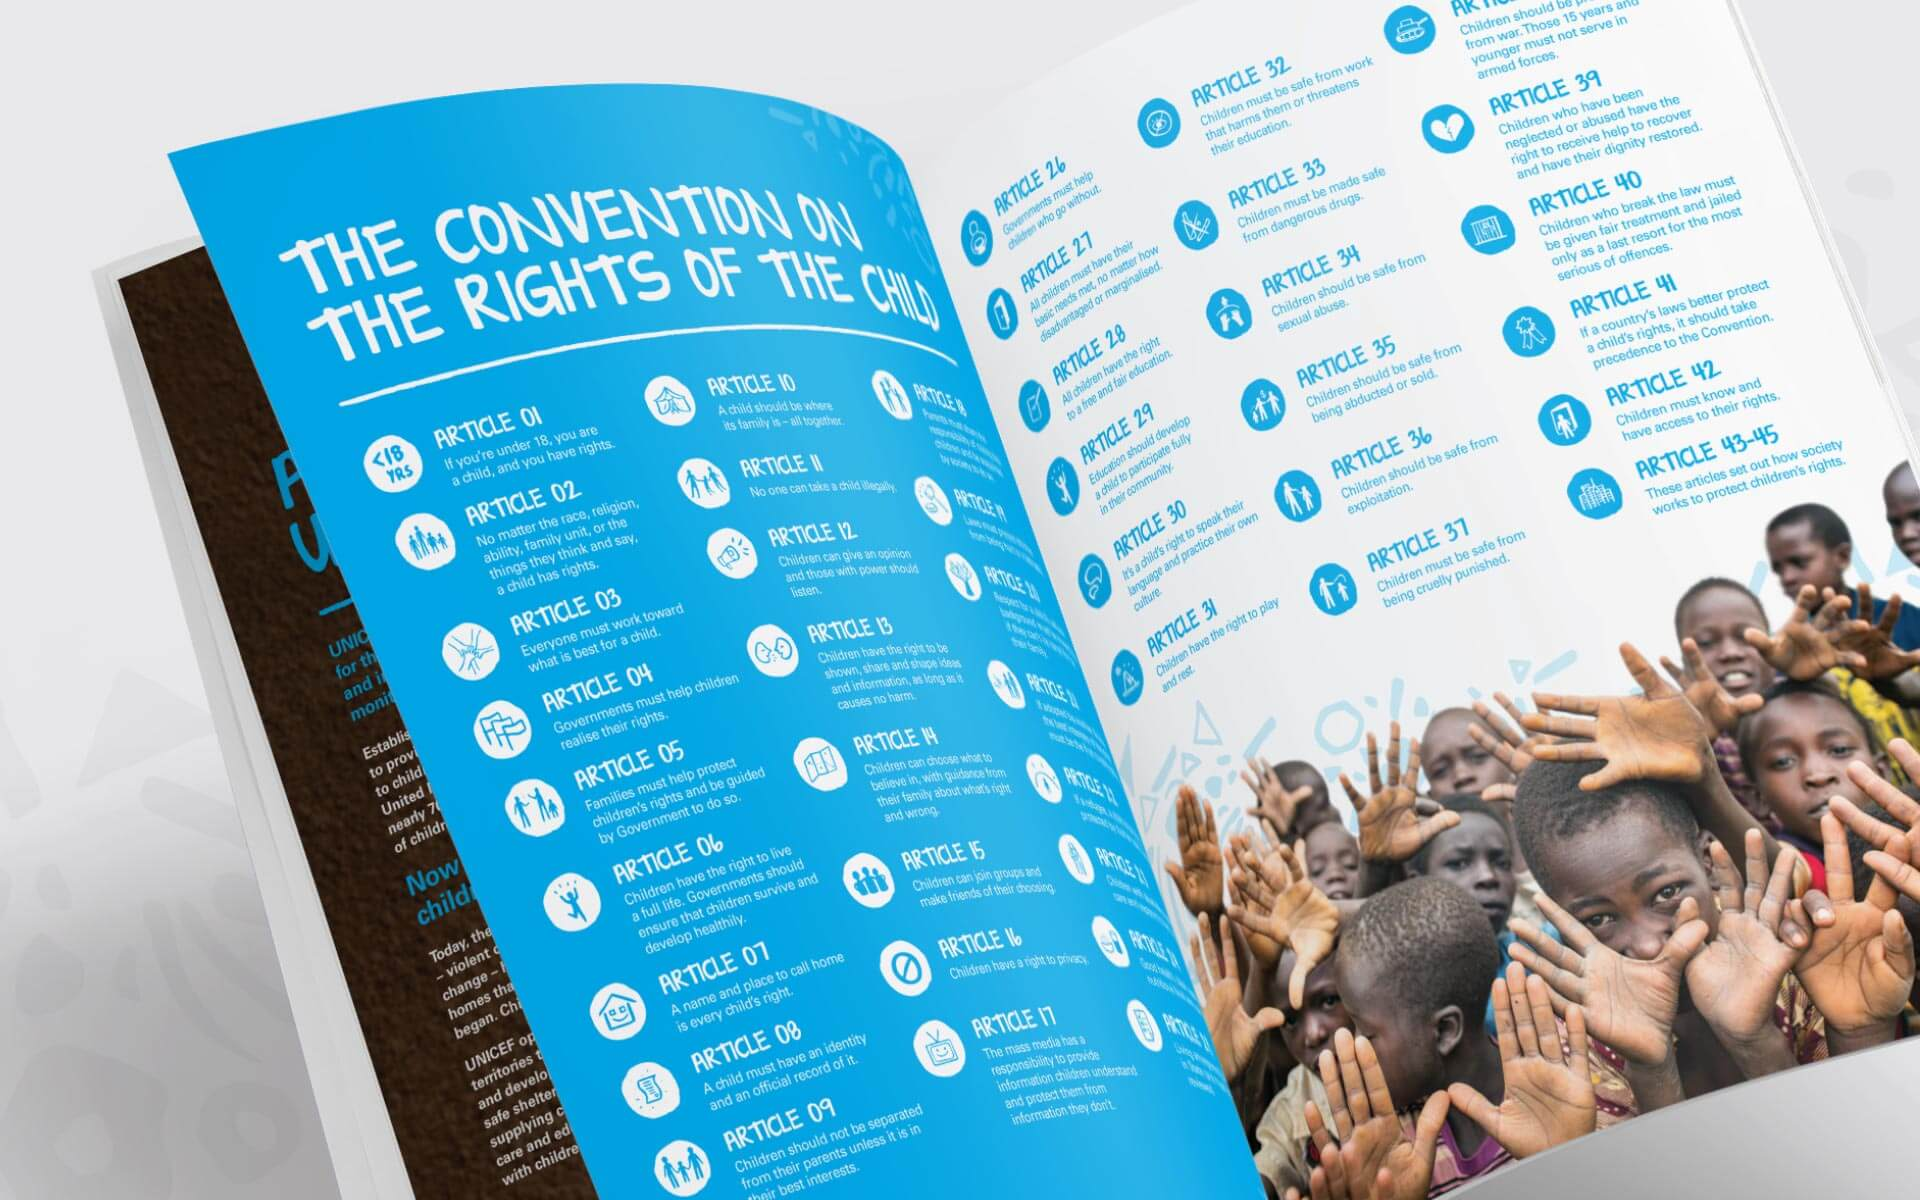 UNICEF Annual Report. The convention on the rights of a child inside spread design.